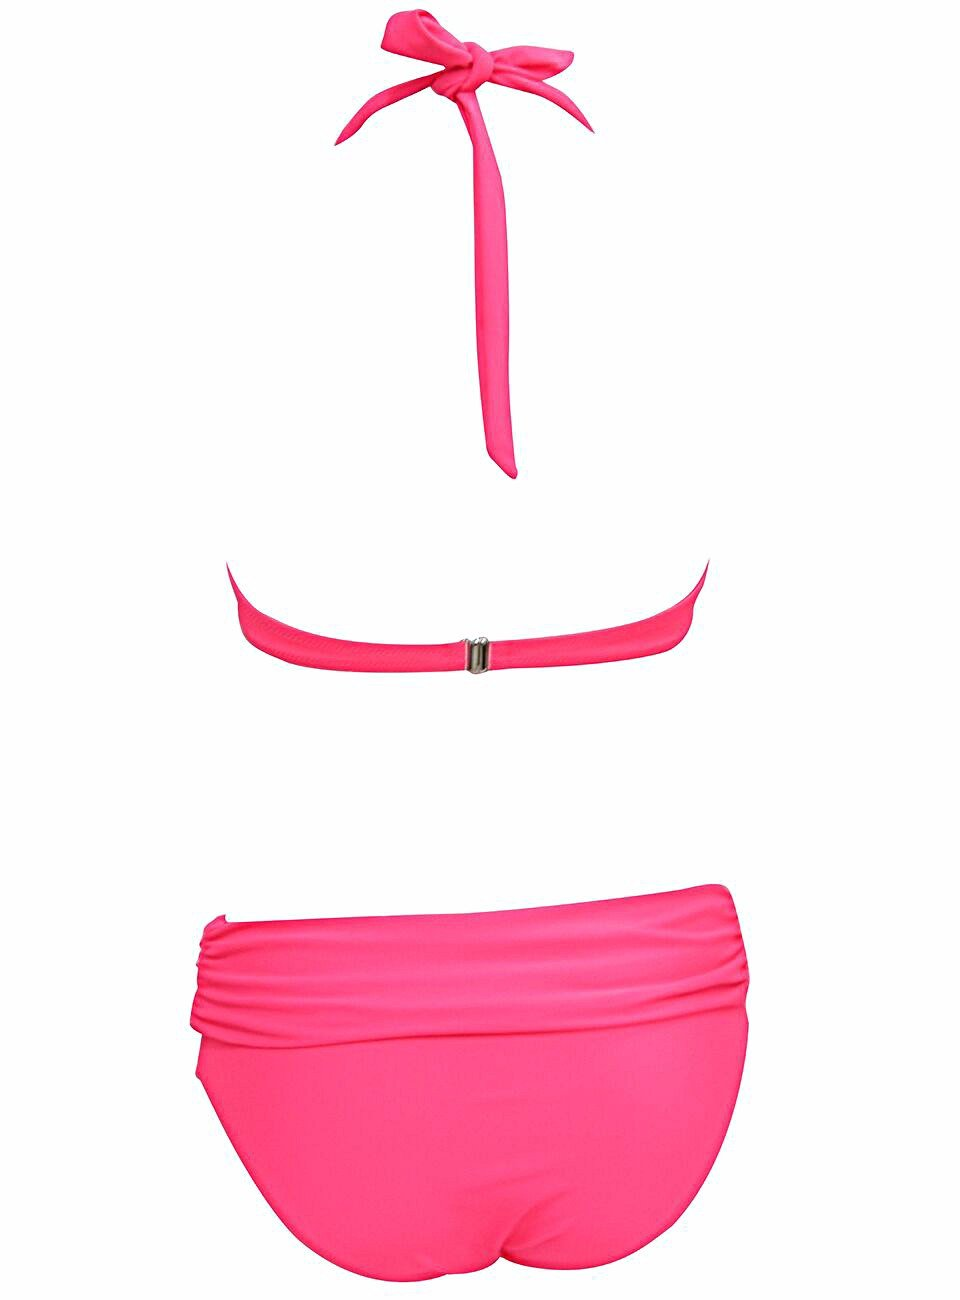 Sexy Bikinis Women Swimsuit Push Up Bikini Set Beach Wear Retro Vintage Bathing Suits Halter Top Swimwear-Tops-SheSimplyShops